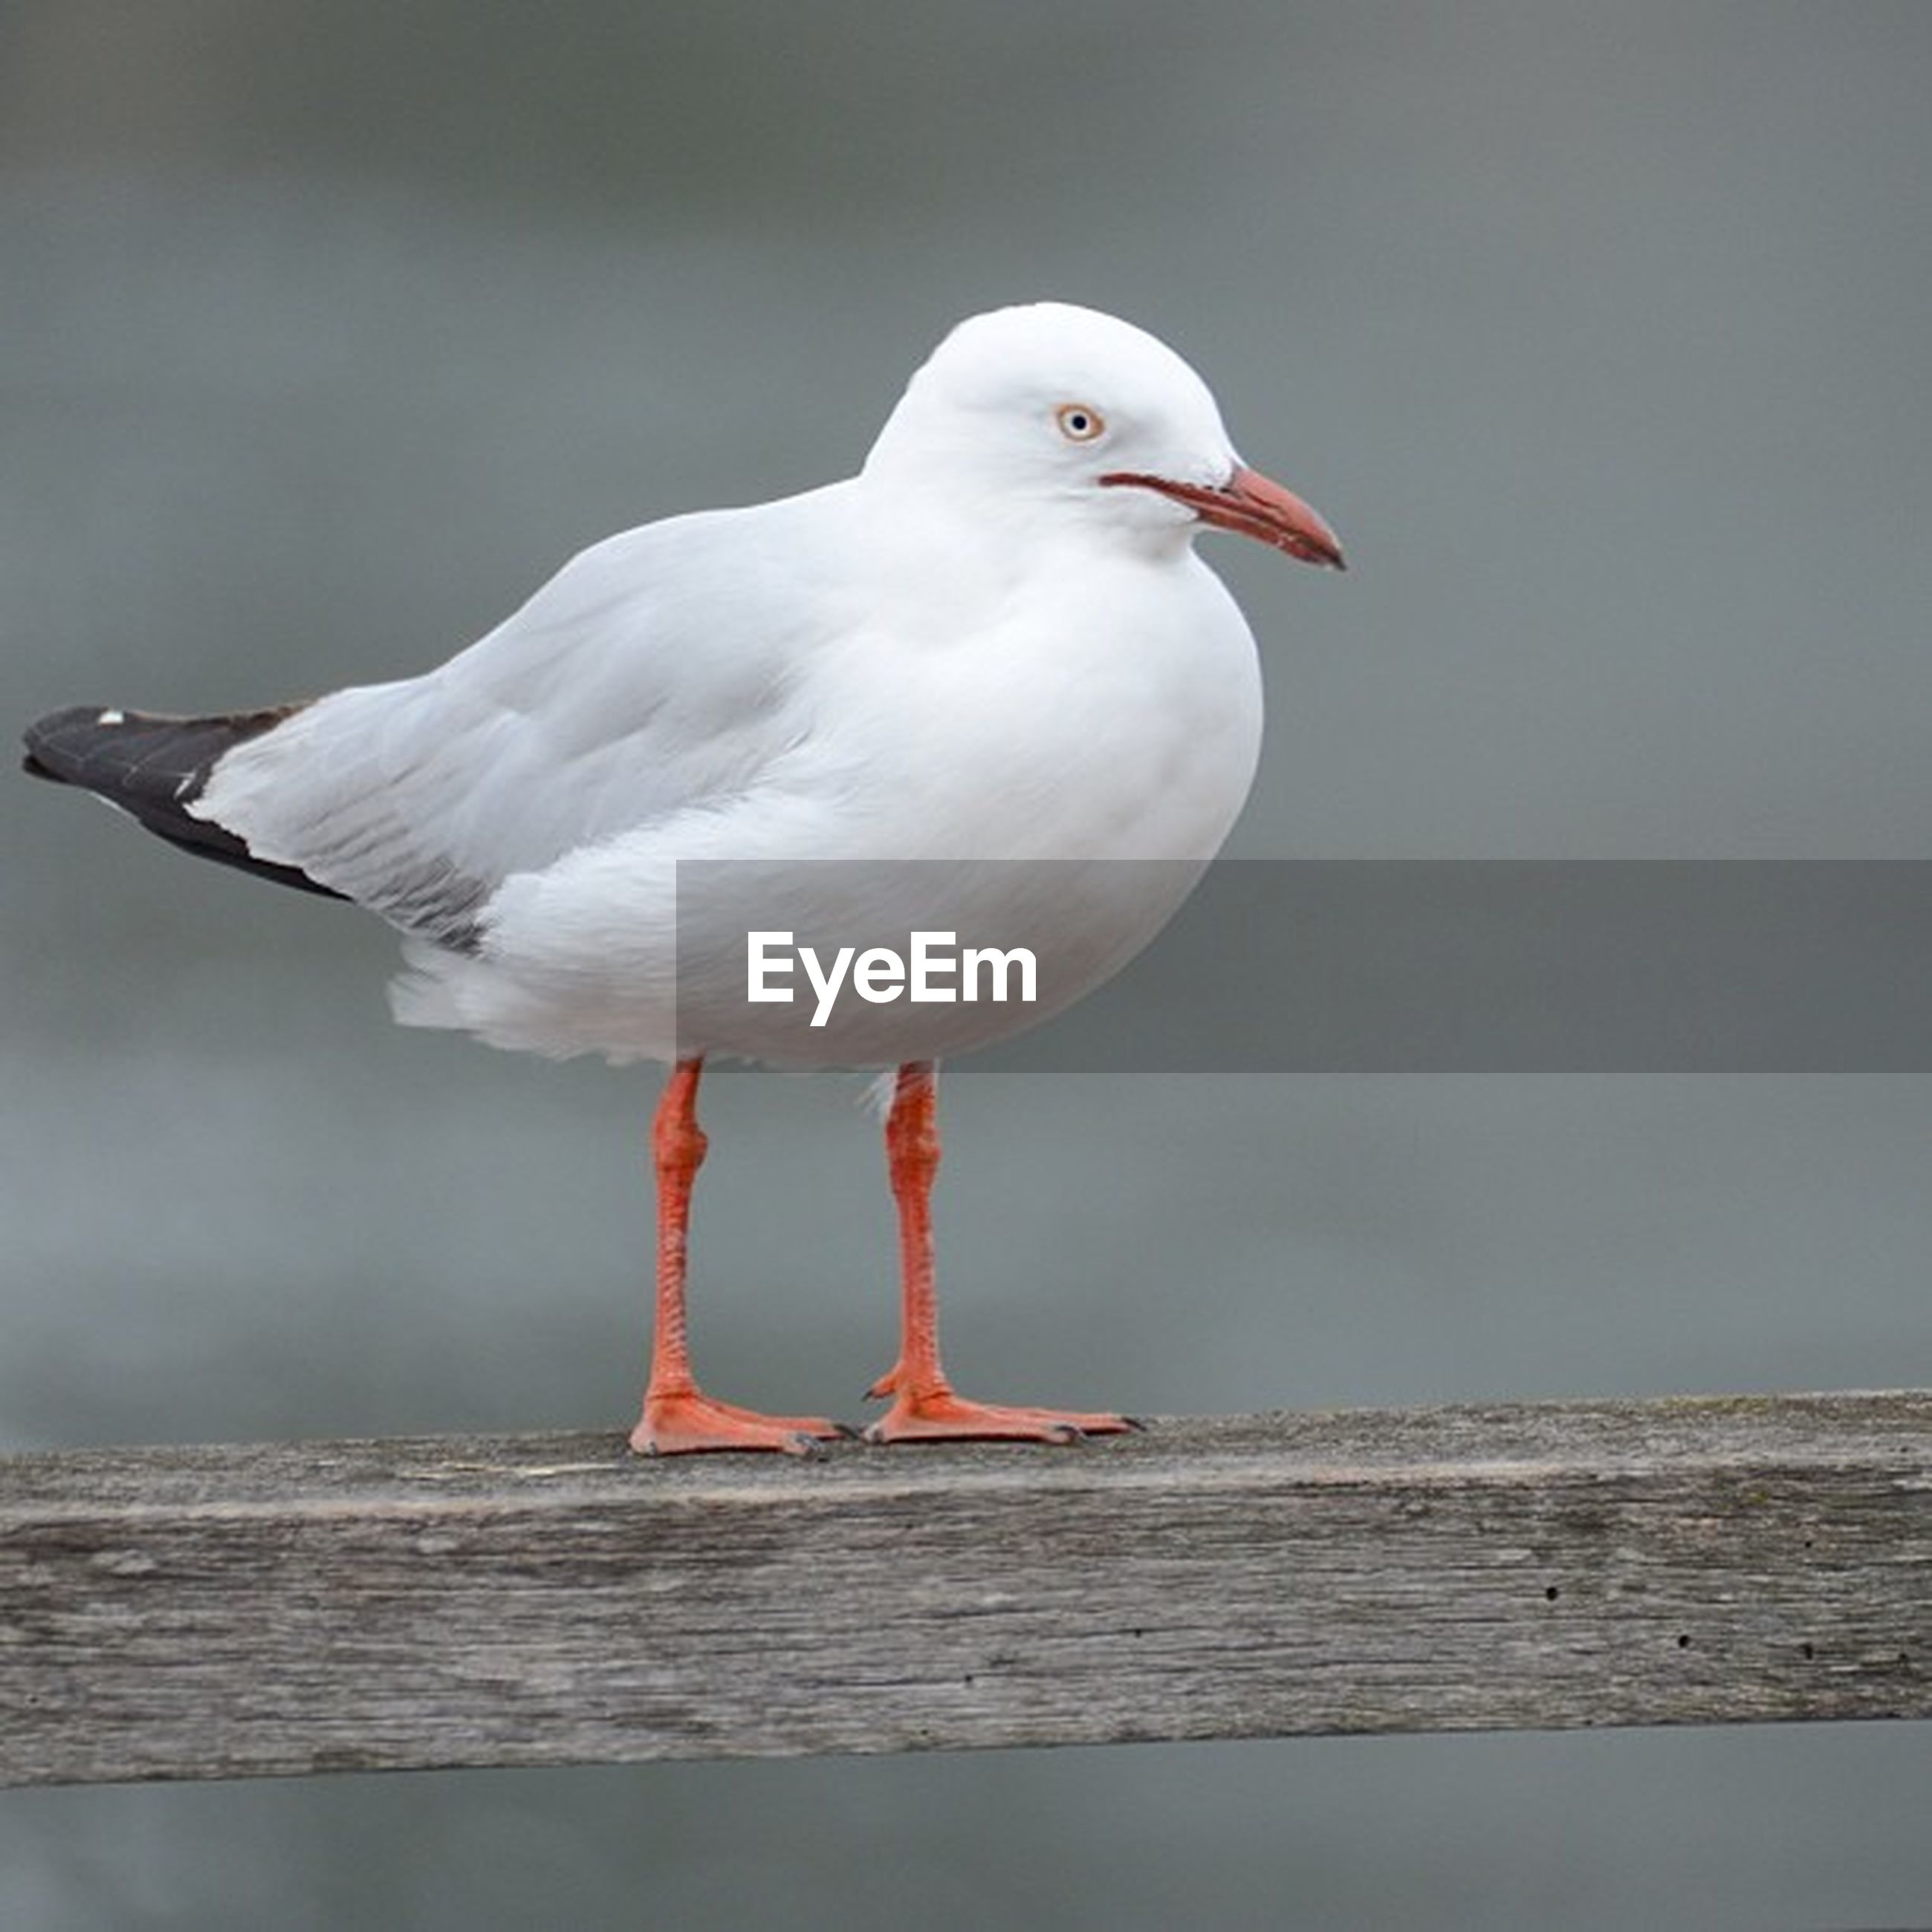 bird, animal themes, seagull, one animal, animals in the wild, wildlife, white color, beak, nature, perching, full length, focus on foreground, day, outdoors, close-up, water, sky, no people, sea bird, side view